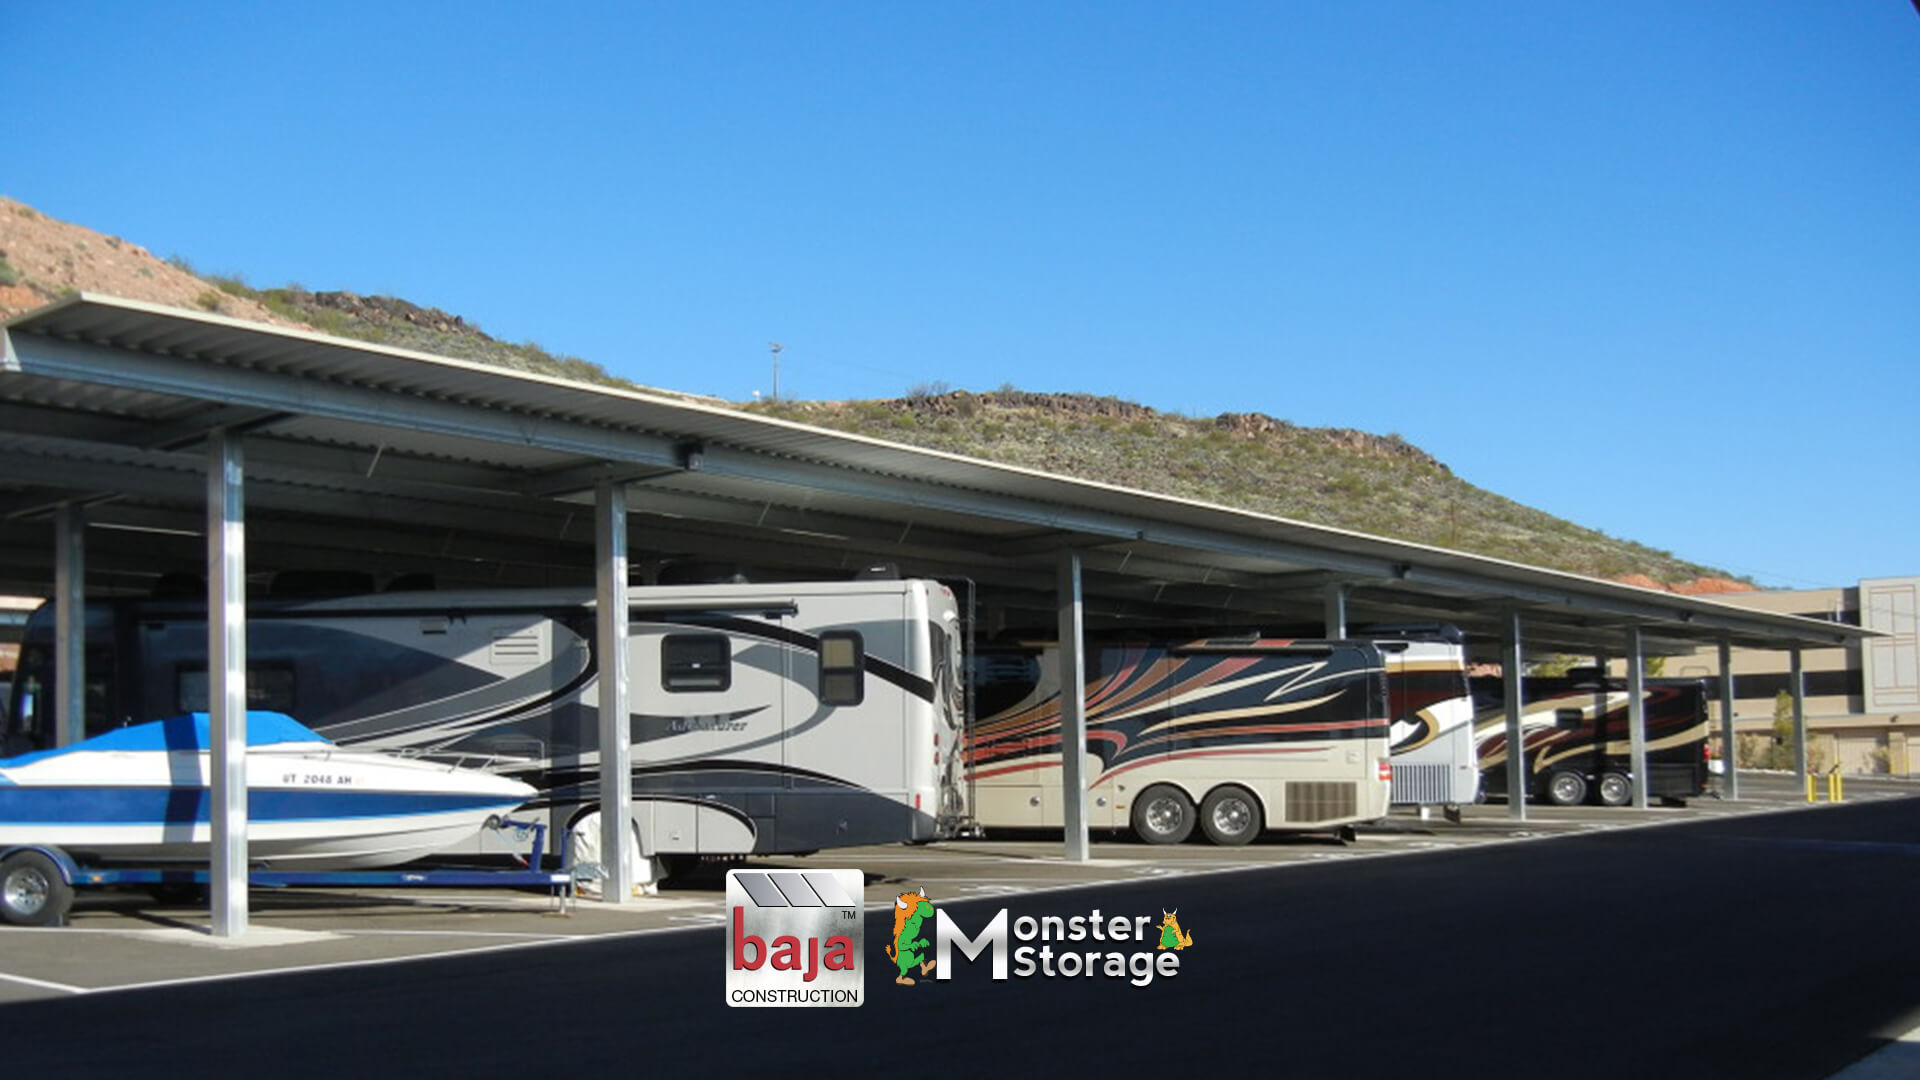 monster storage in st george ut offers covered rv parking